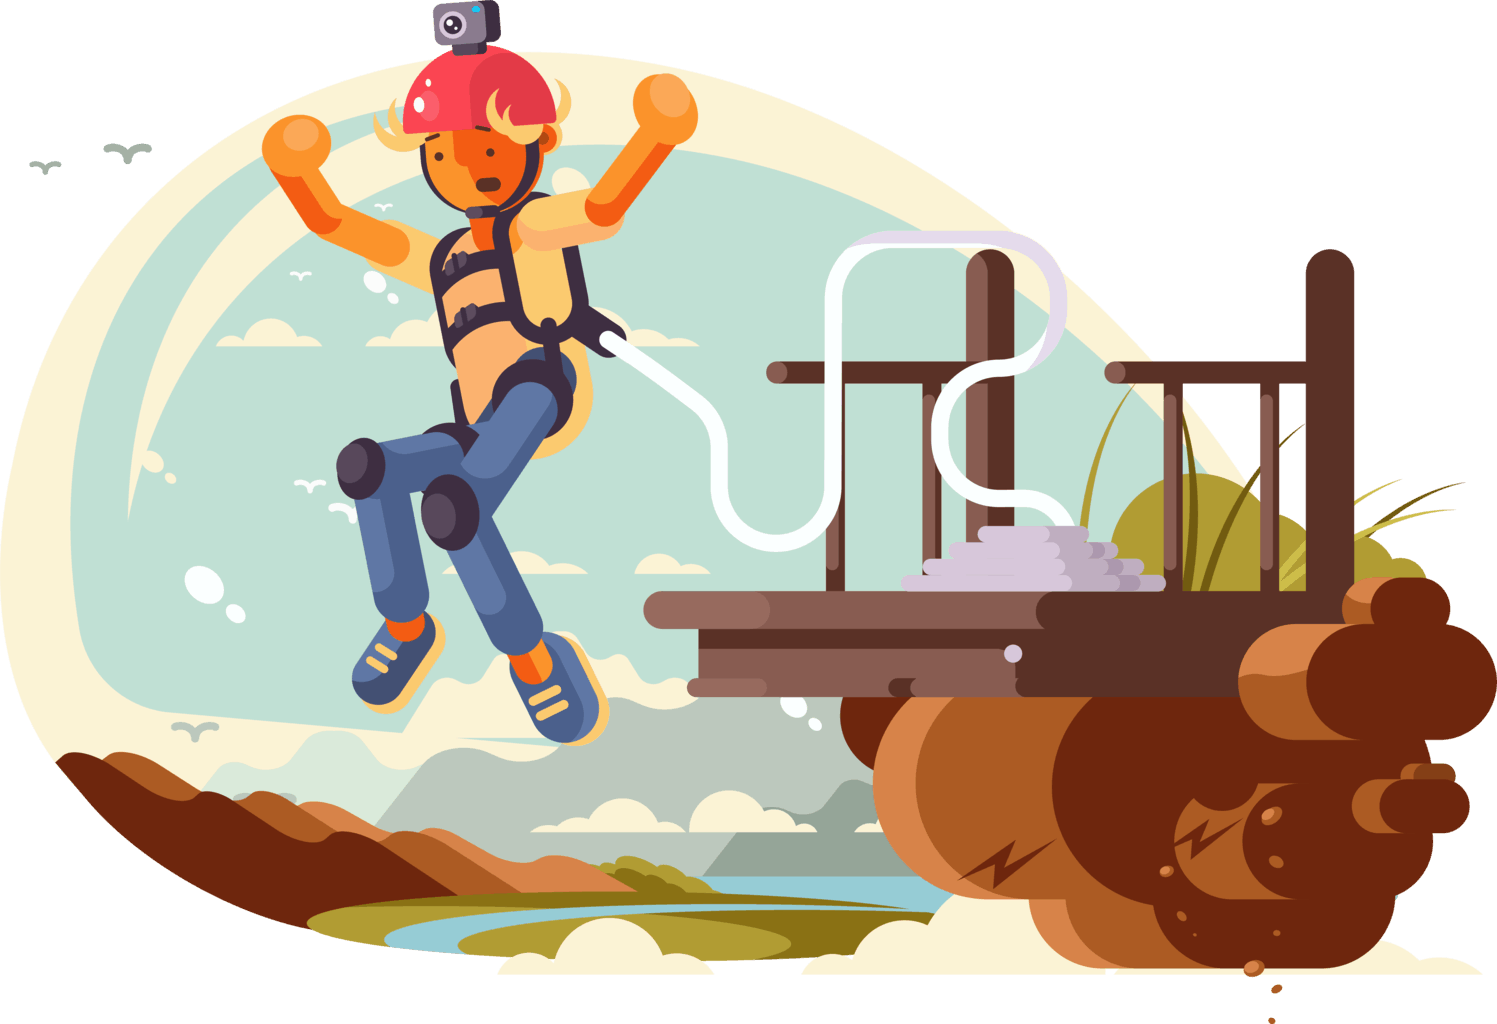 Illustration of a person bungee jumping from a cliff